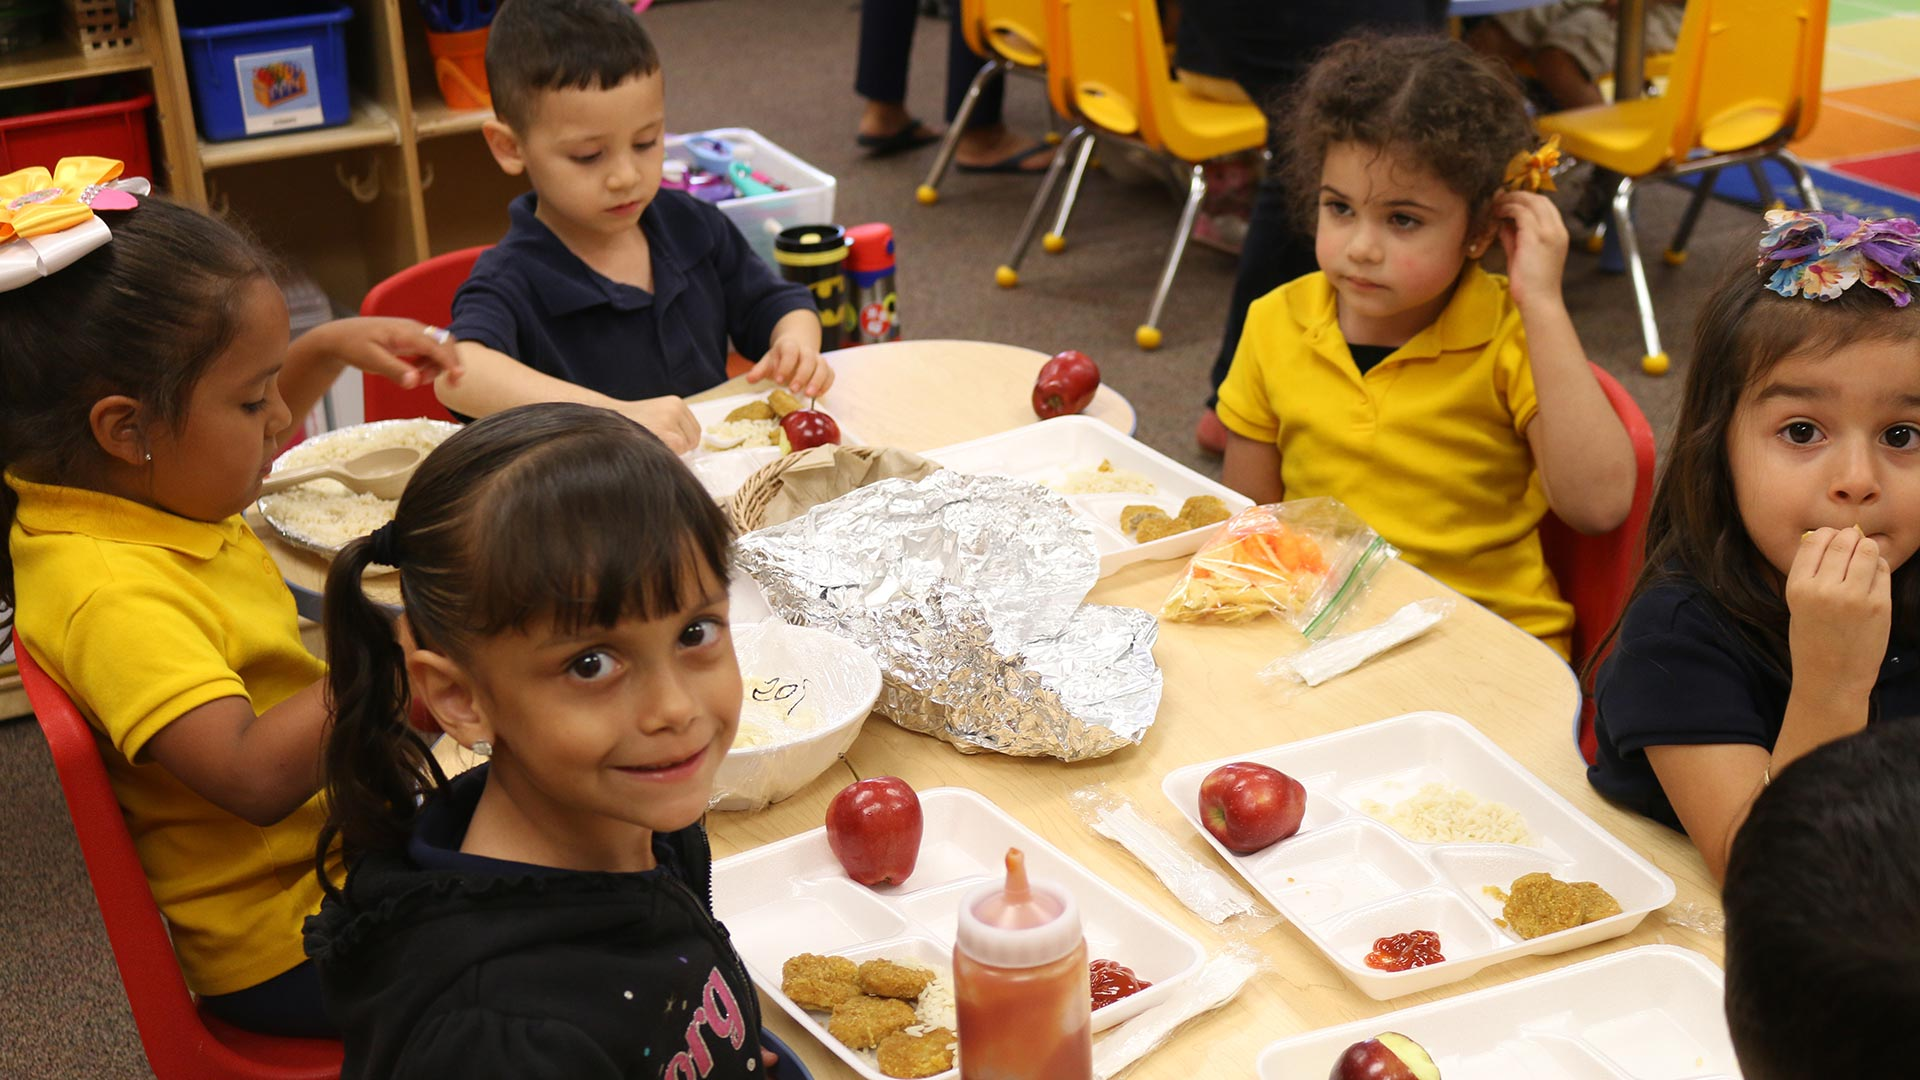 Students at the preK-8 Calabasas School in the Santa Cruz Valley Unified School District.